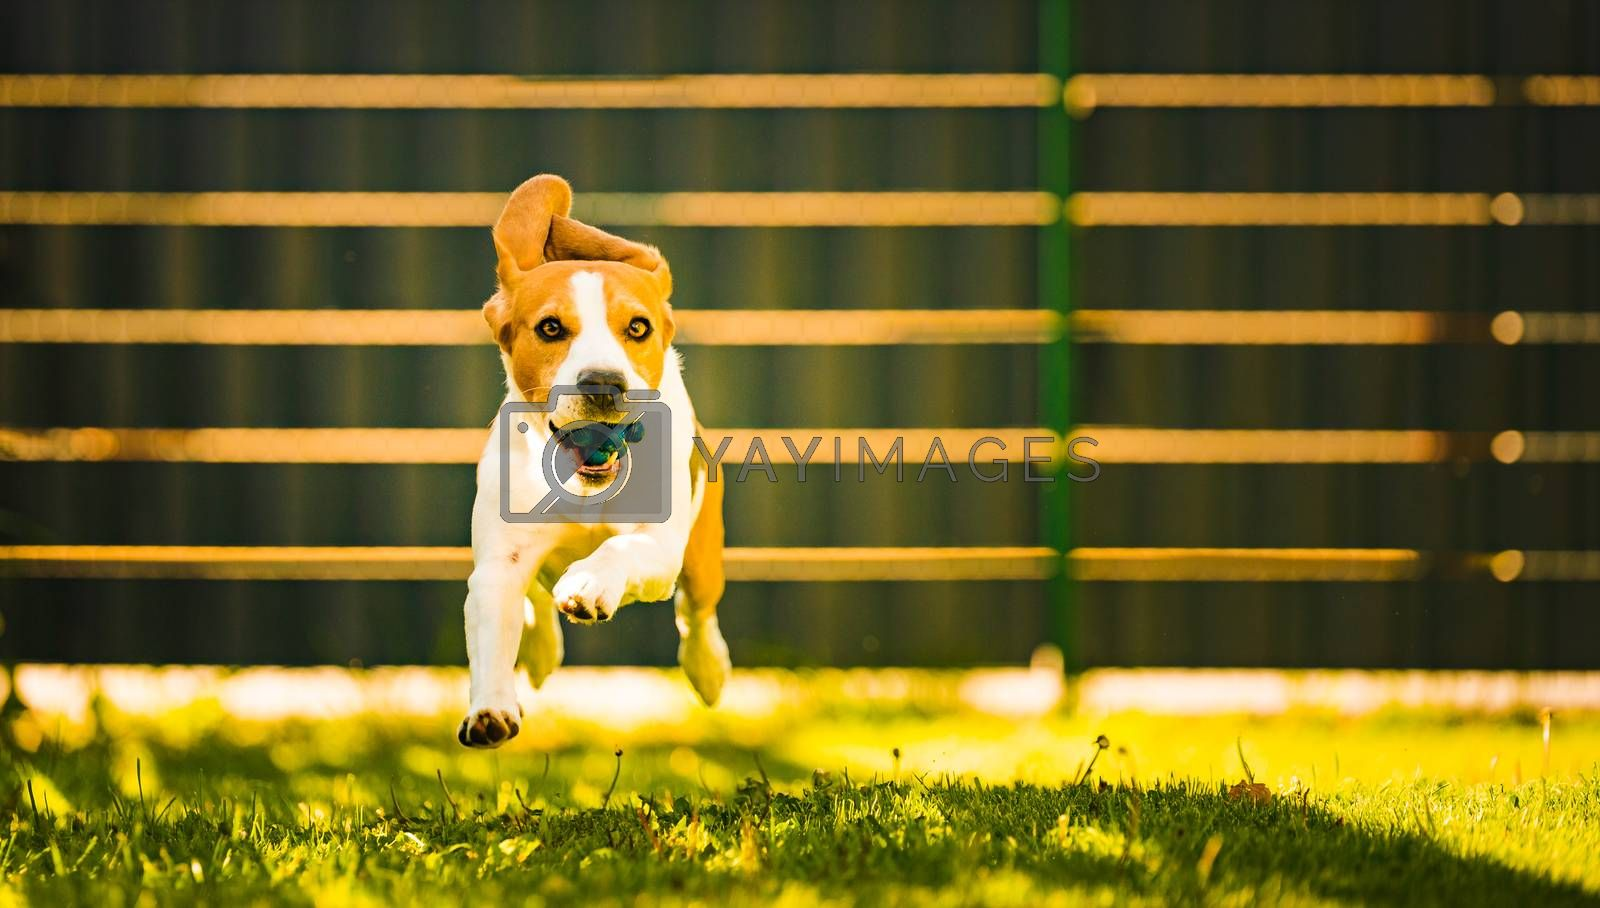 Cute Beagle dog running happy over the yard with a blue ball towards camera. by Madphotos